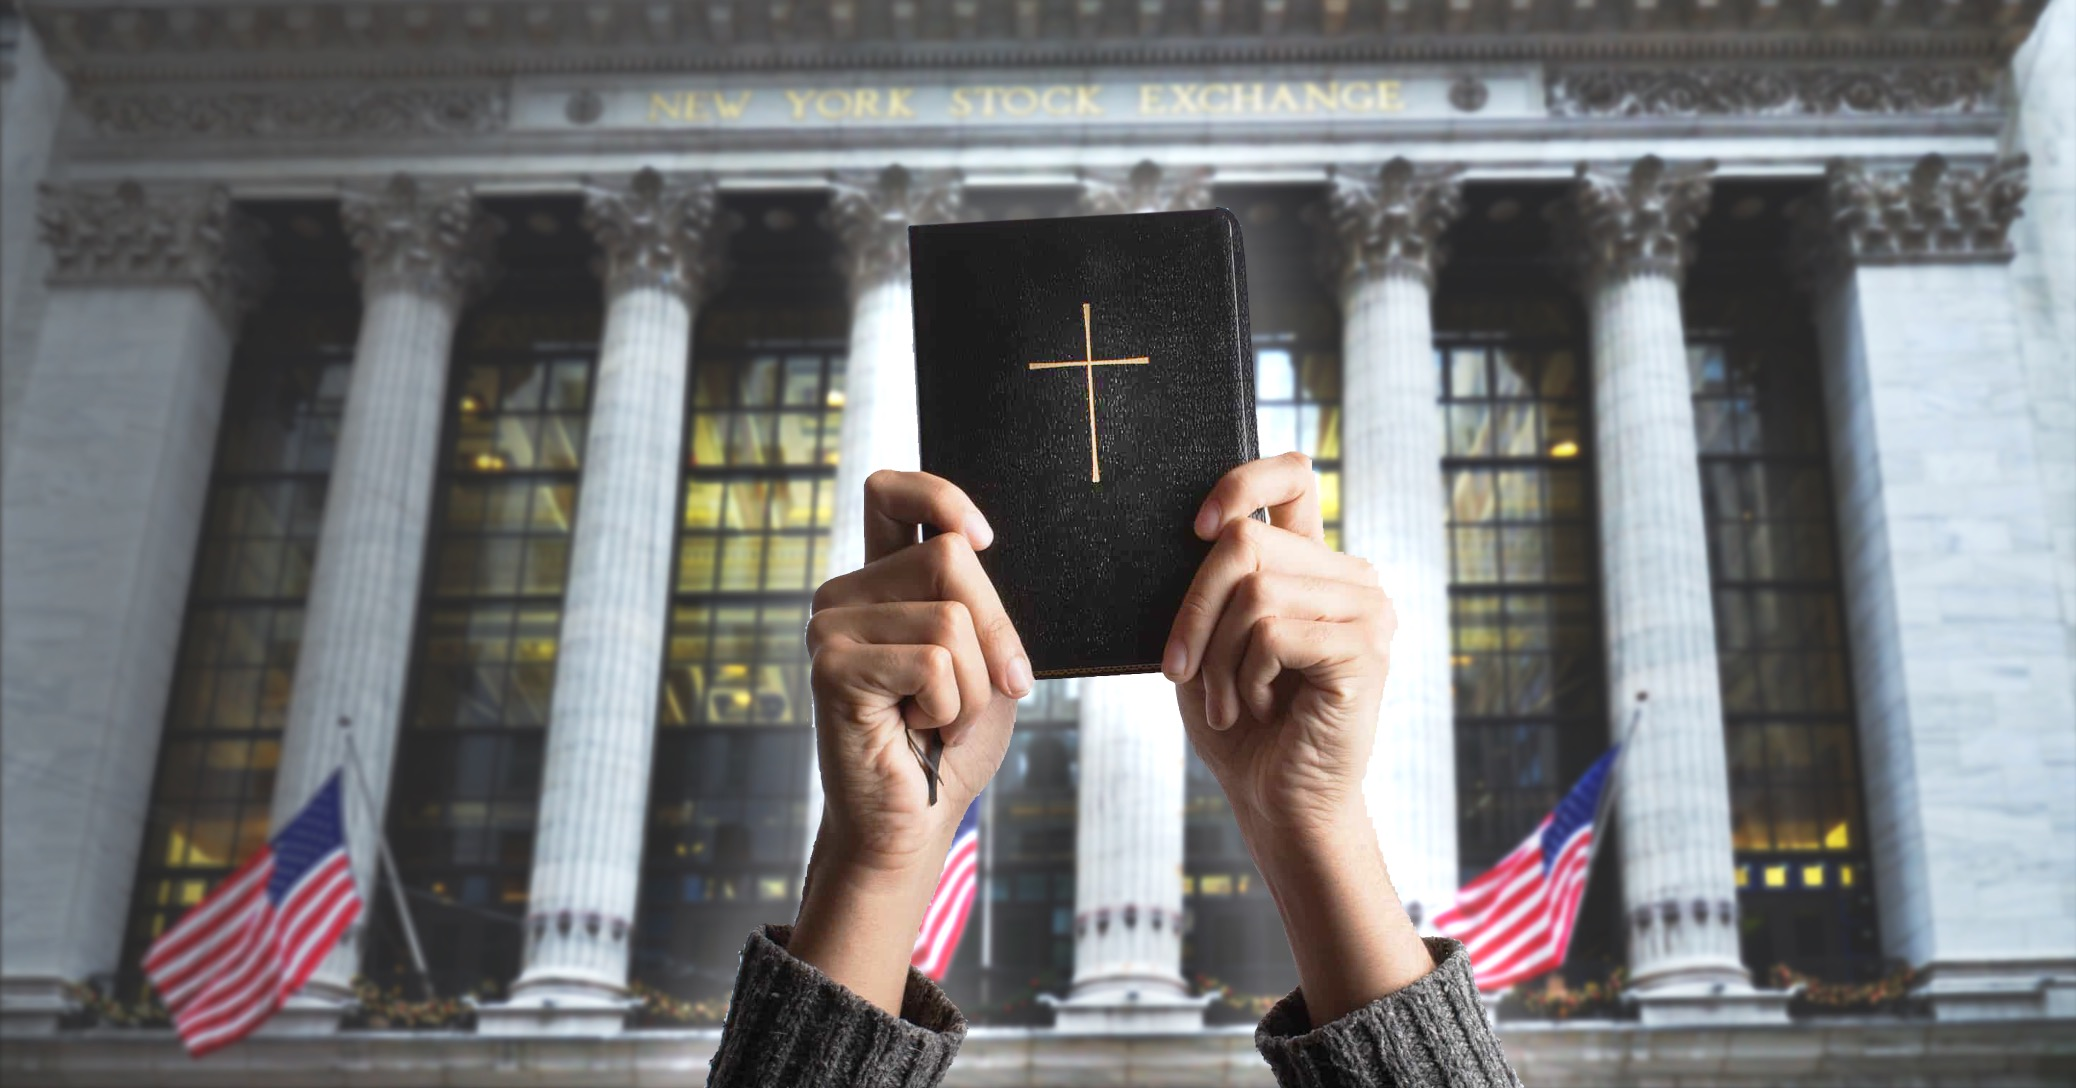 Inspire Investing Welcomes Timothy Plan ETFs To Biblically Responsible Investing Market